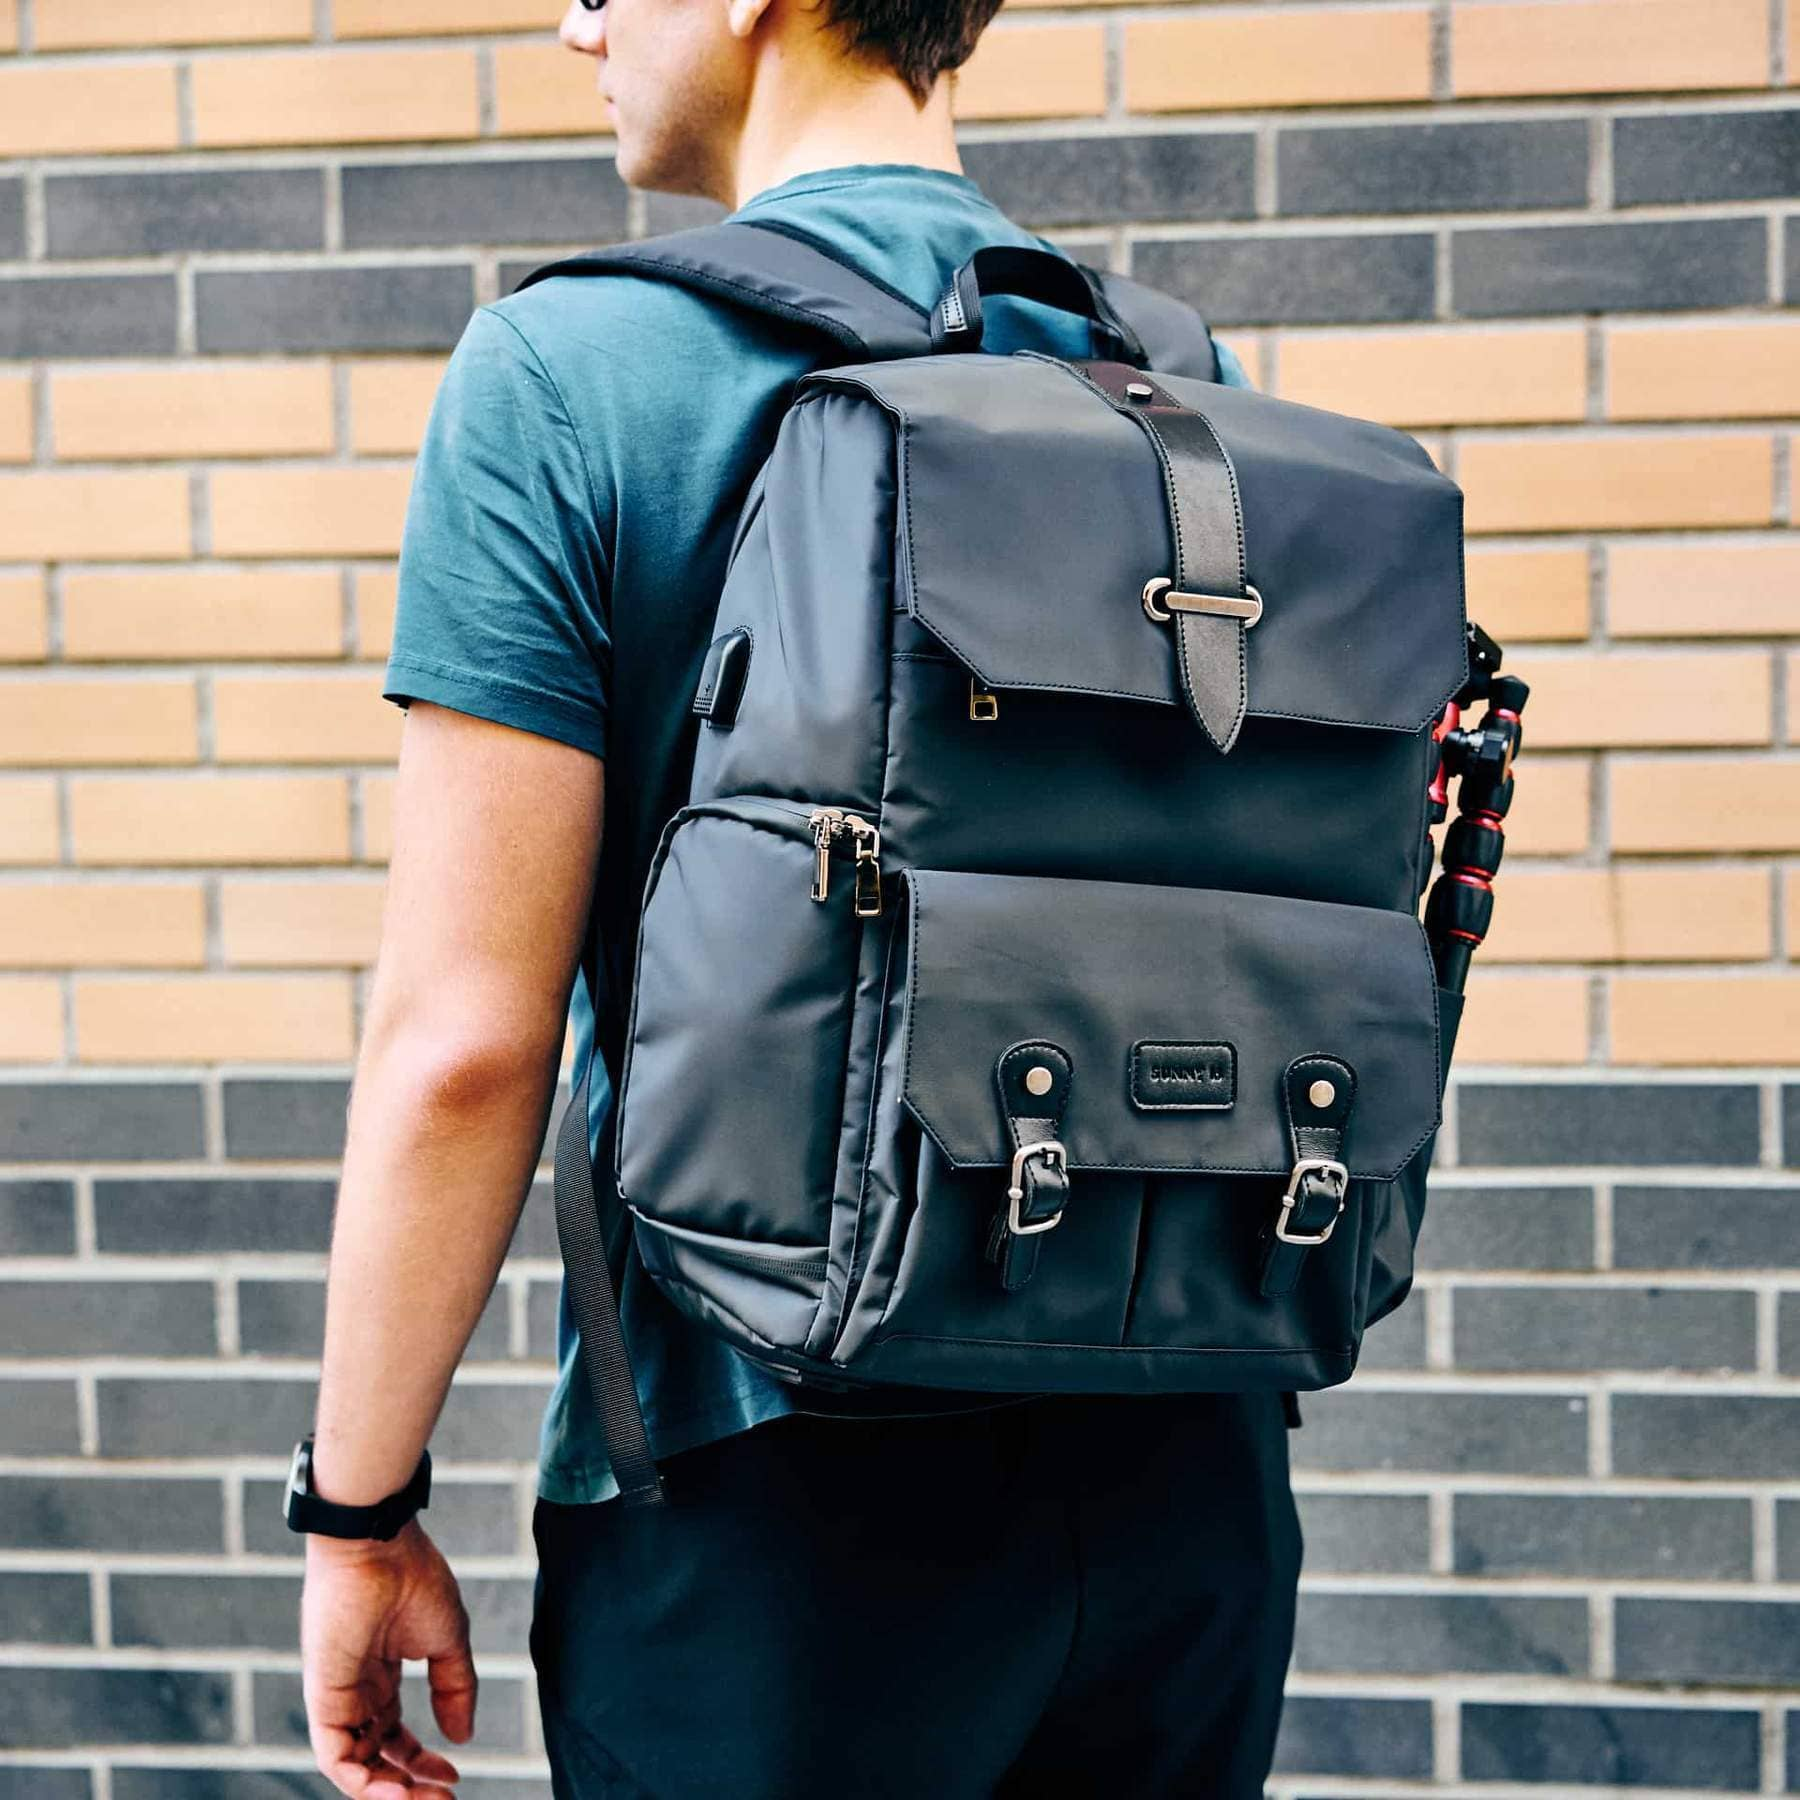 Sunny 16 - The Voyager - Best Camera Backpack - Best Camera and Lens Backpack